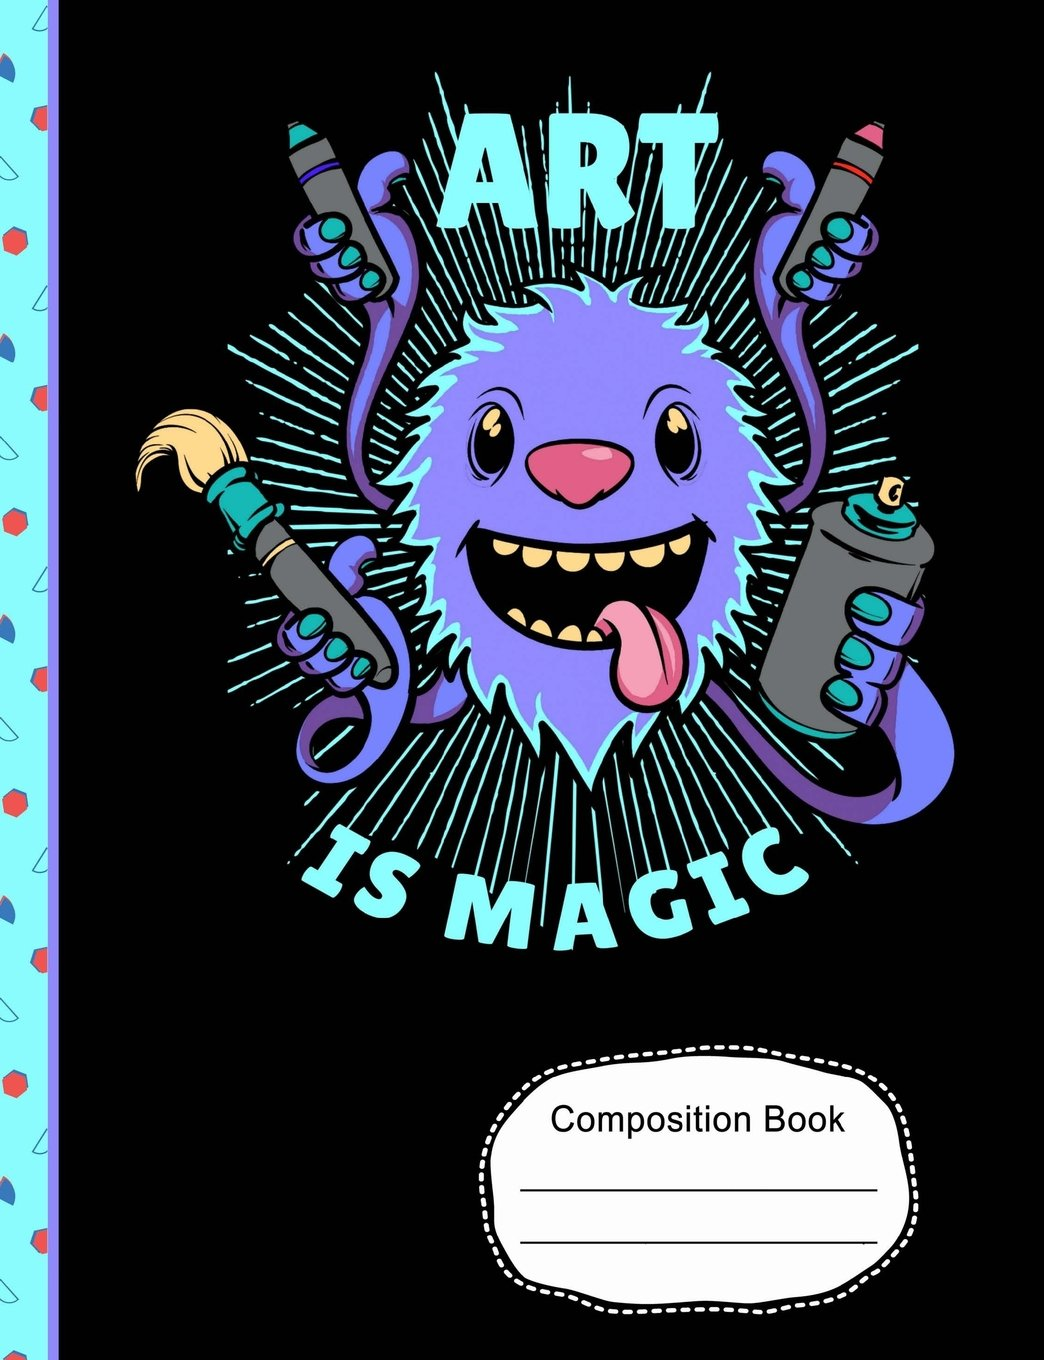 """Cute Monster Art Is Magic Composition Notebook: Sketchbook, Art Notebook Journal Paper for School Teachers Students, 200 Blank Numbered Pages (7.44"""" x 9.69"""") pdf"""